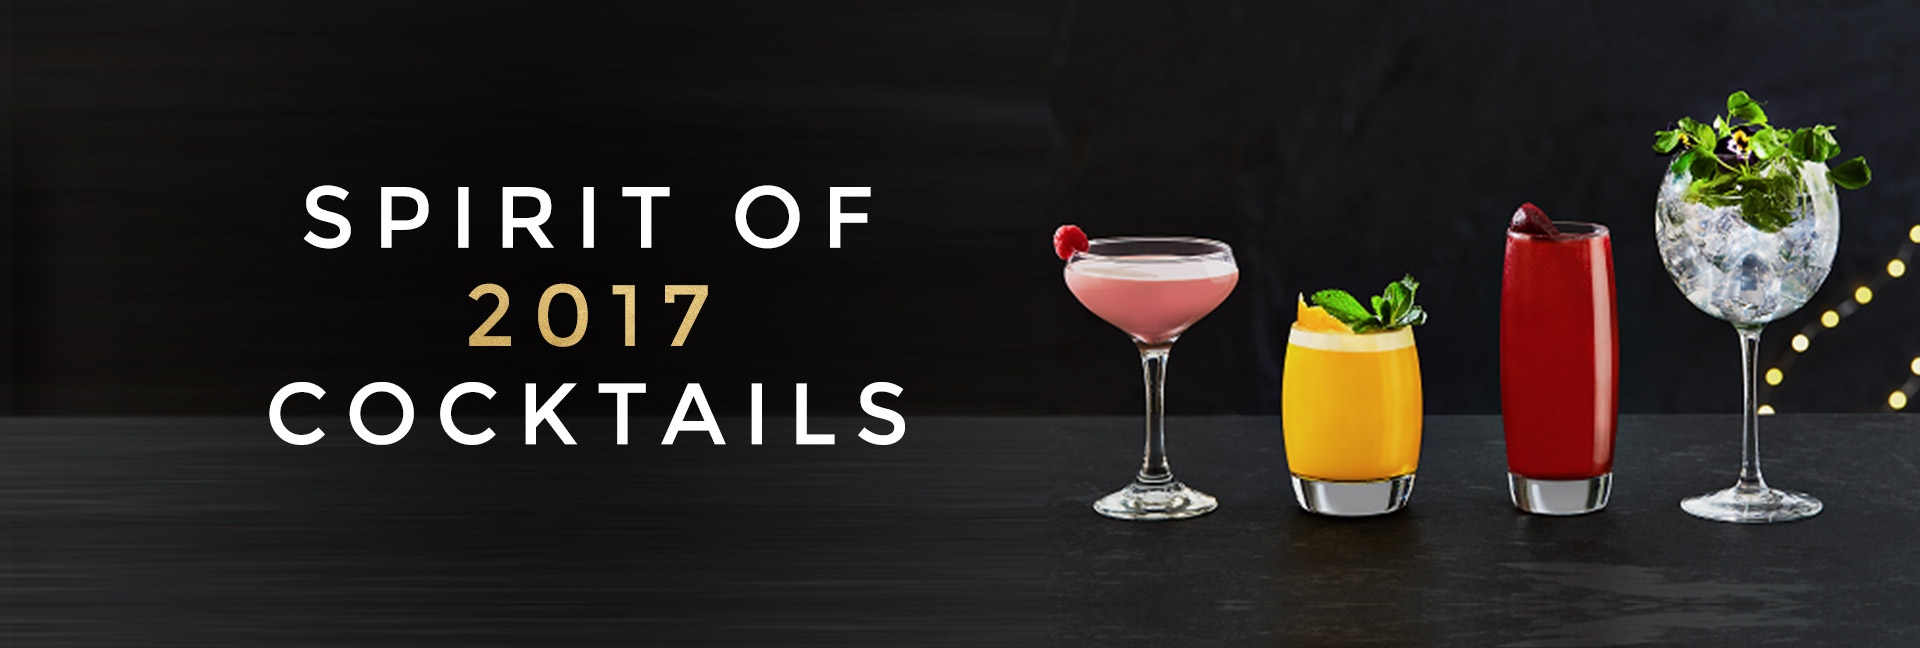 Spirit of 2017 cocktails at All Bar One Leicester Square